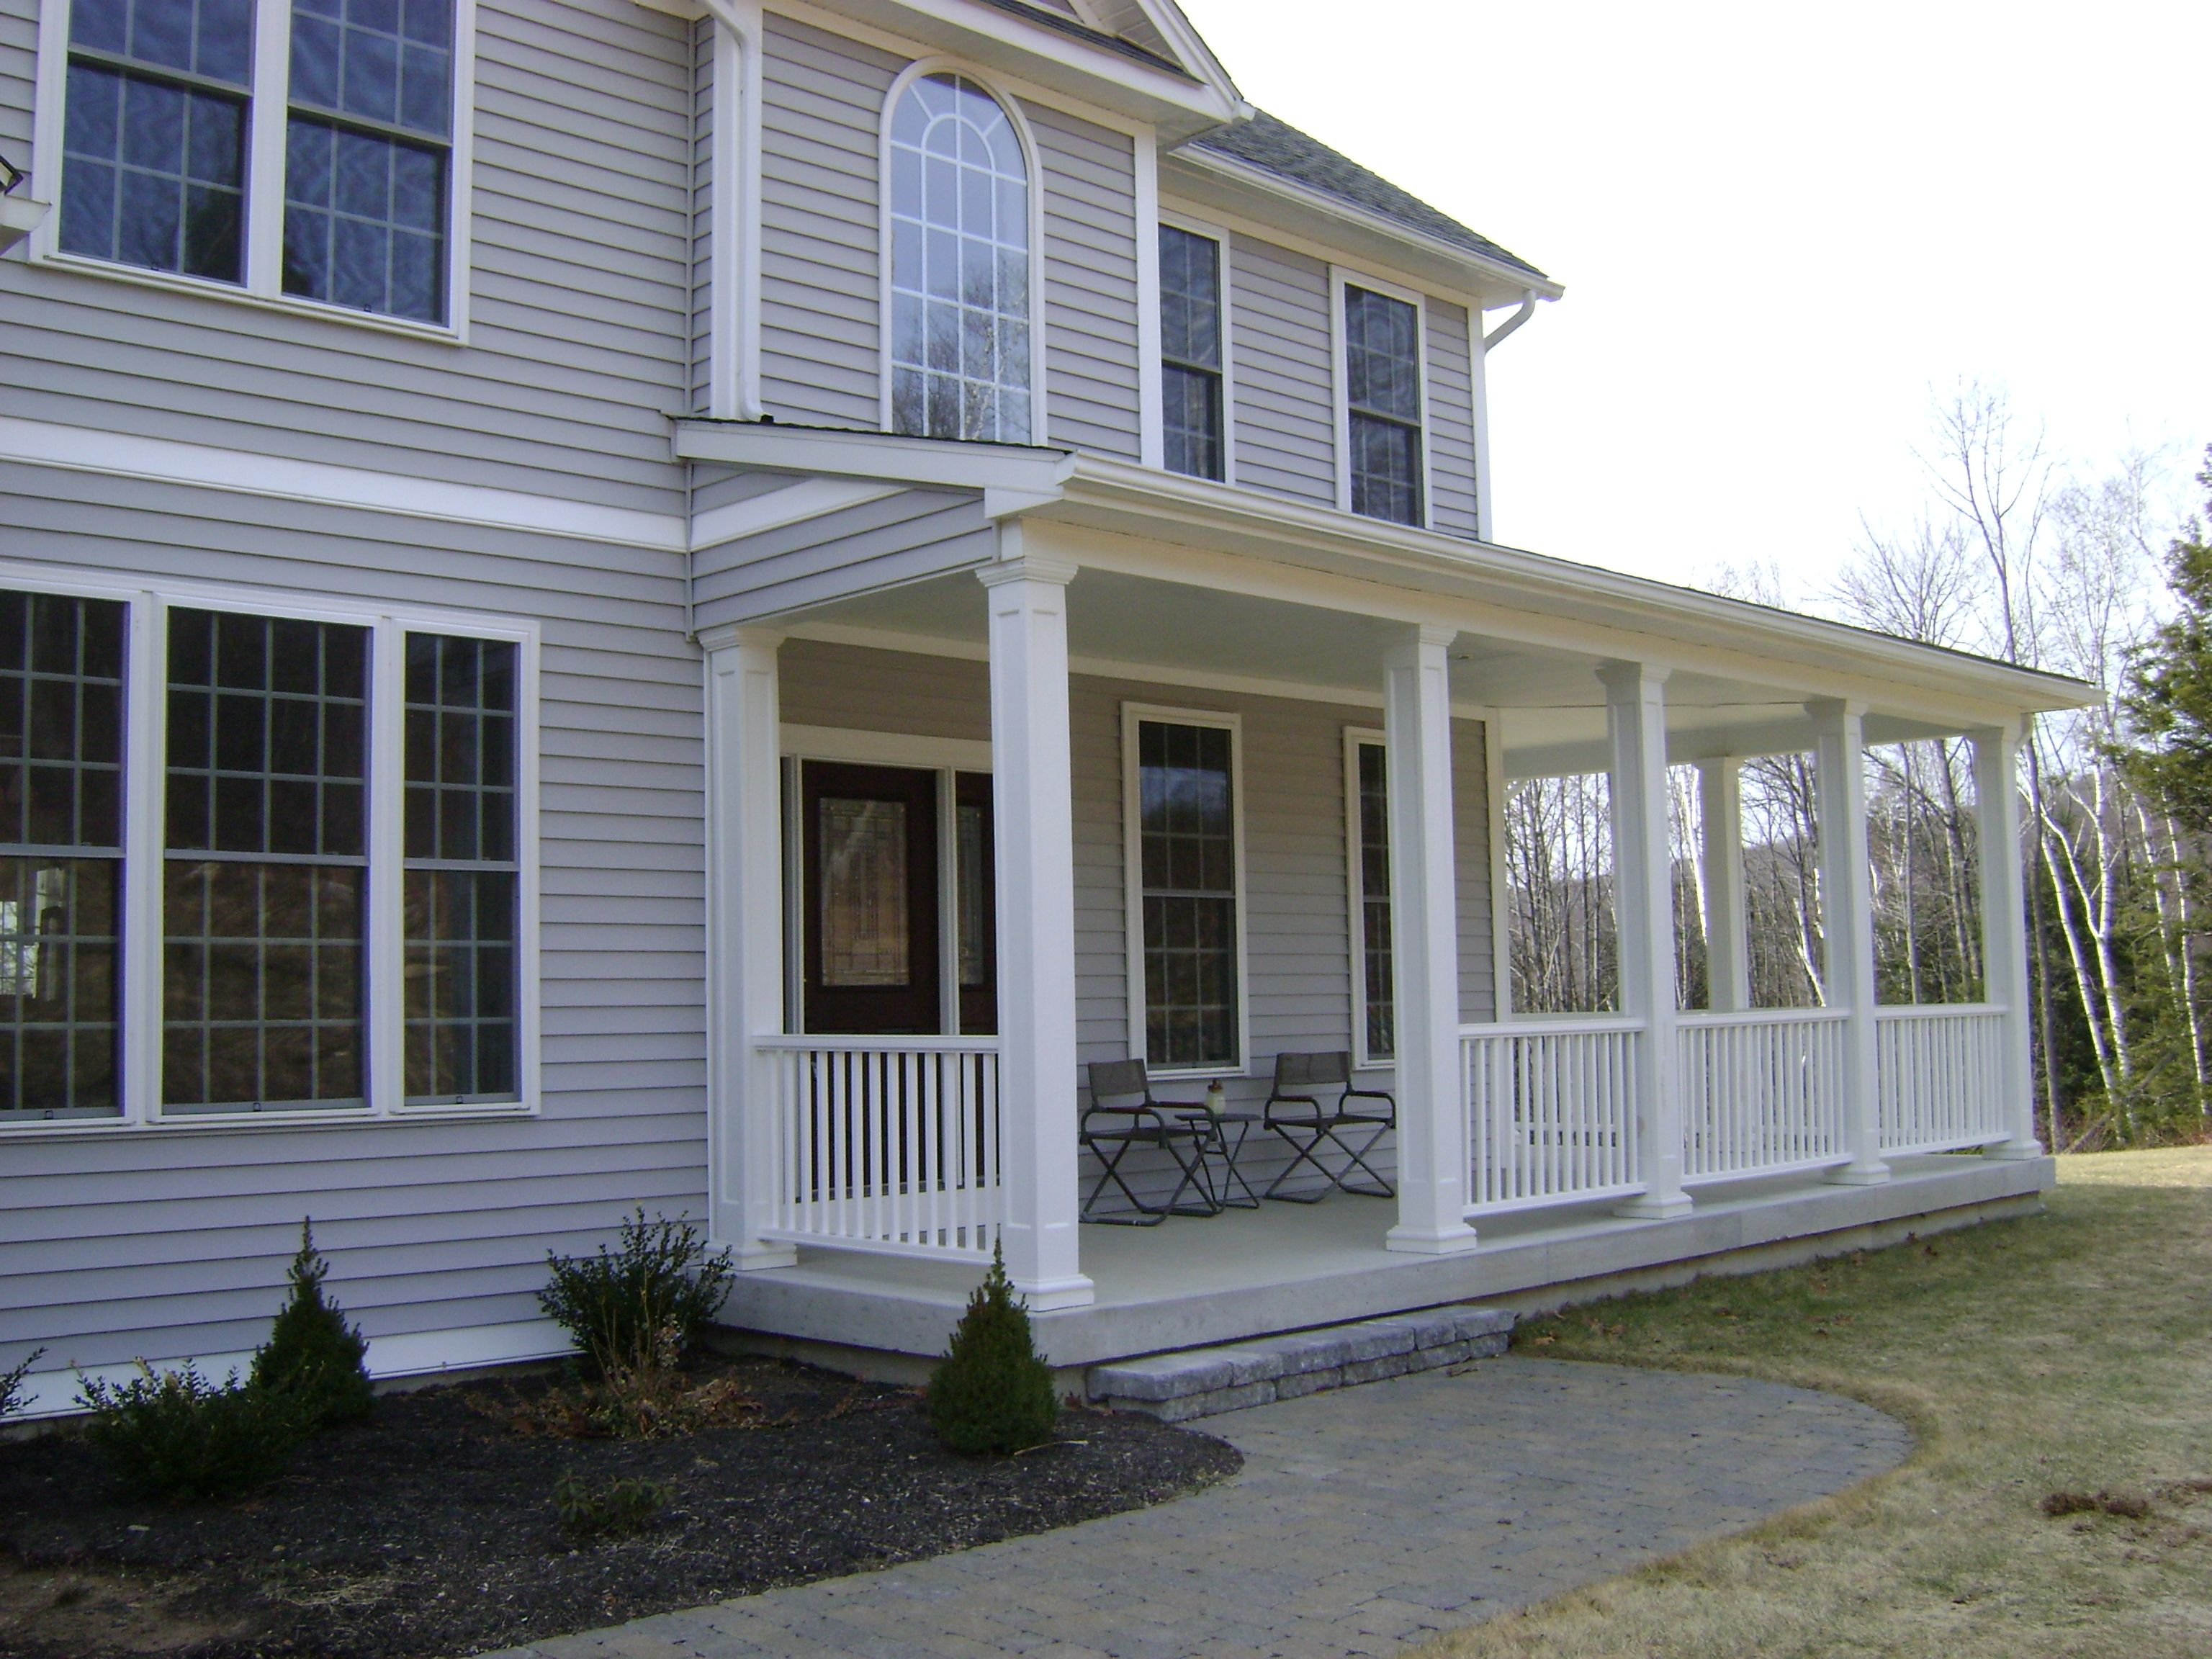 Front Porch Design Ideas traditional exterior front porch design ideas pictures remodel and decor Front Porchjpg Like This But Scaled To My House